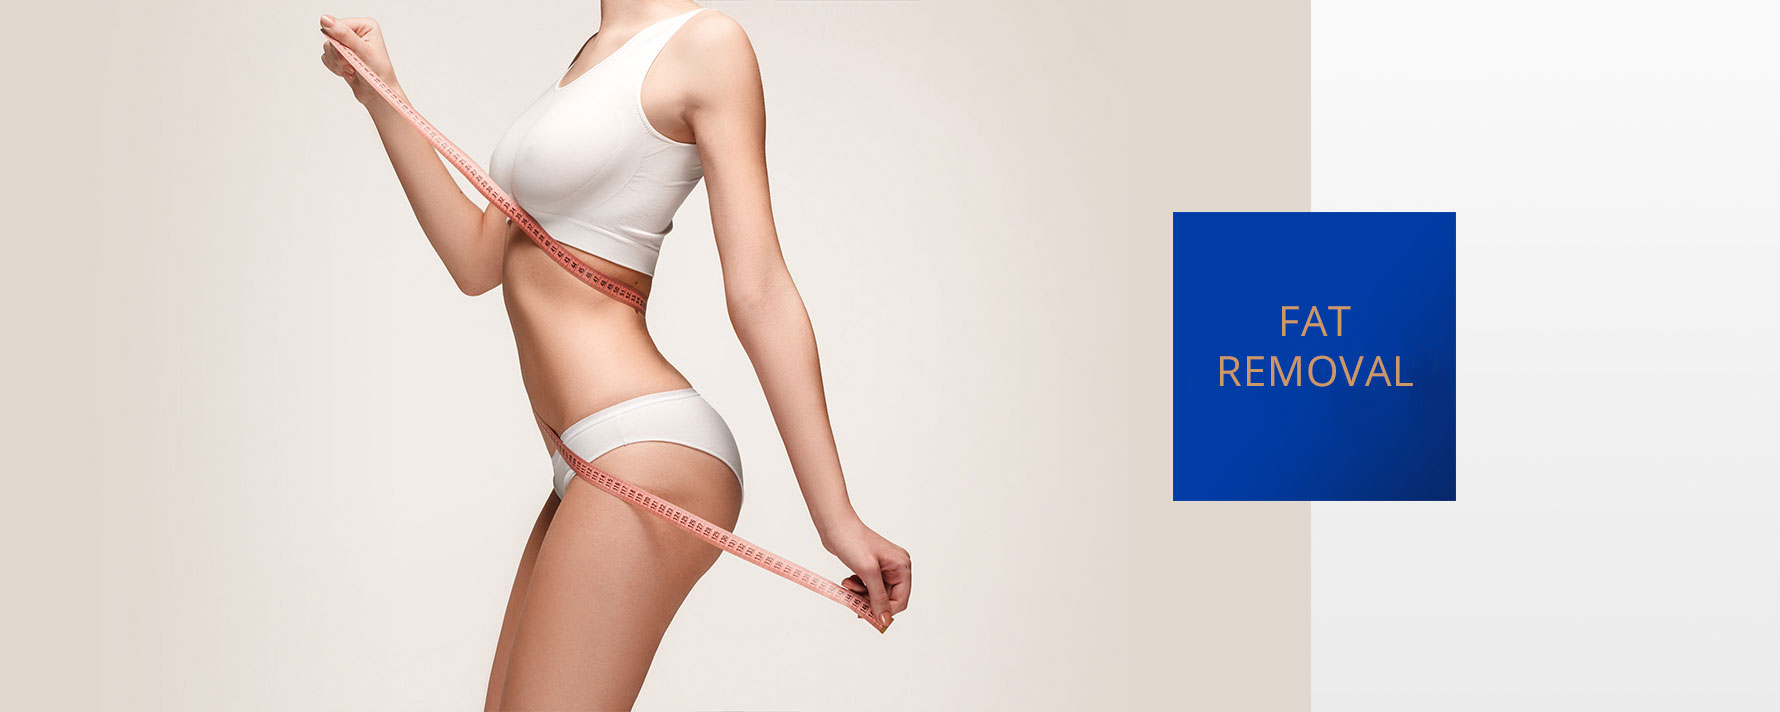 fat-removal-banner